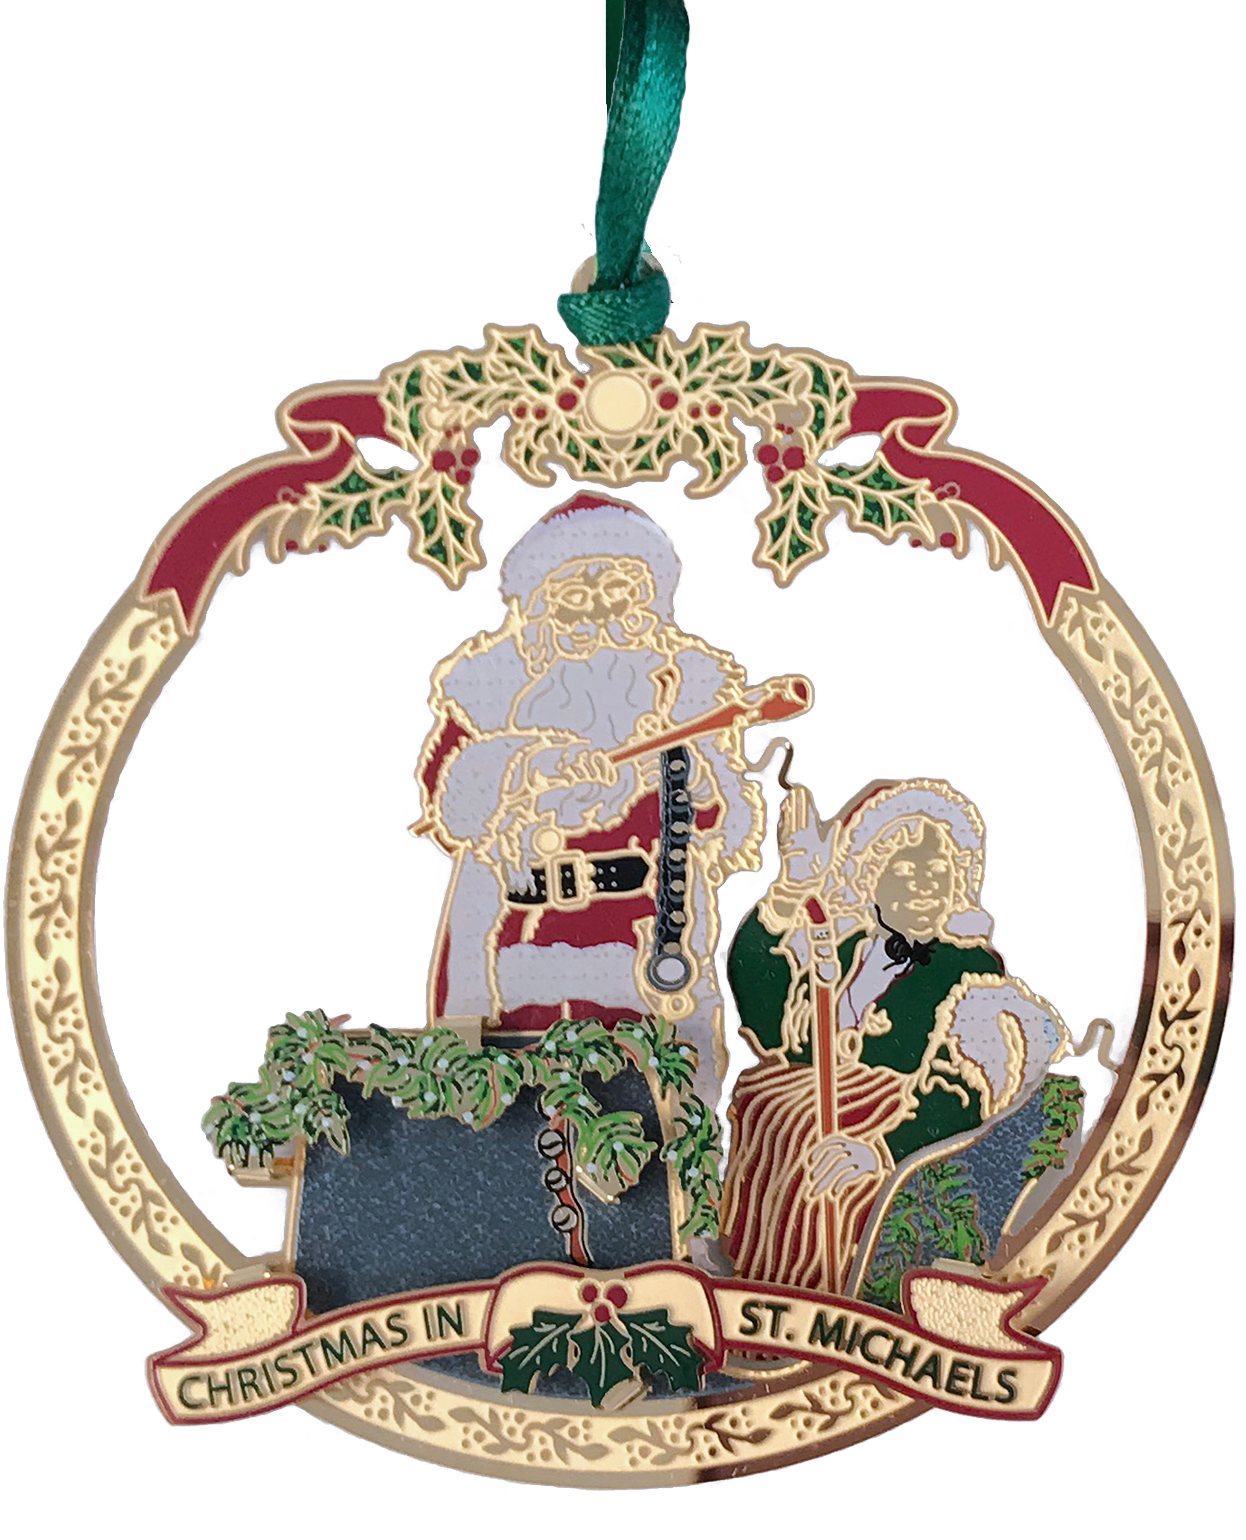 Michaels Christmas Ornaments 2019 2019 Collectors Ornament | Christmas In St. Michaels